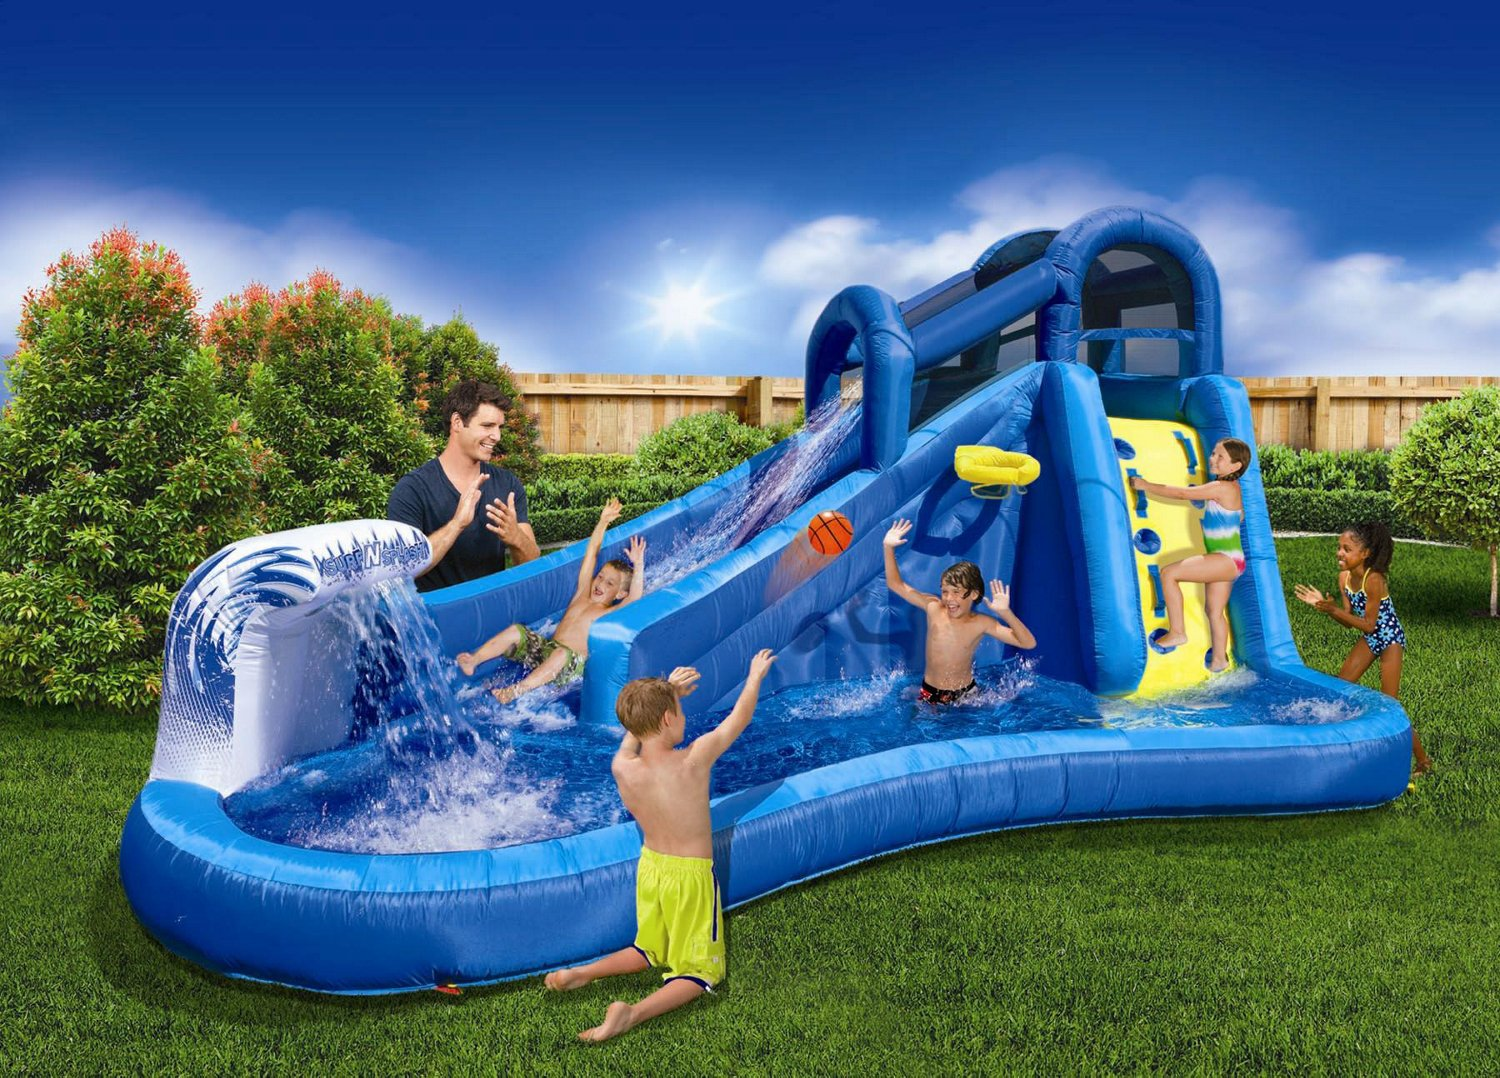 How to make a mobile water park a true children's inflatable water park?